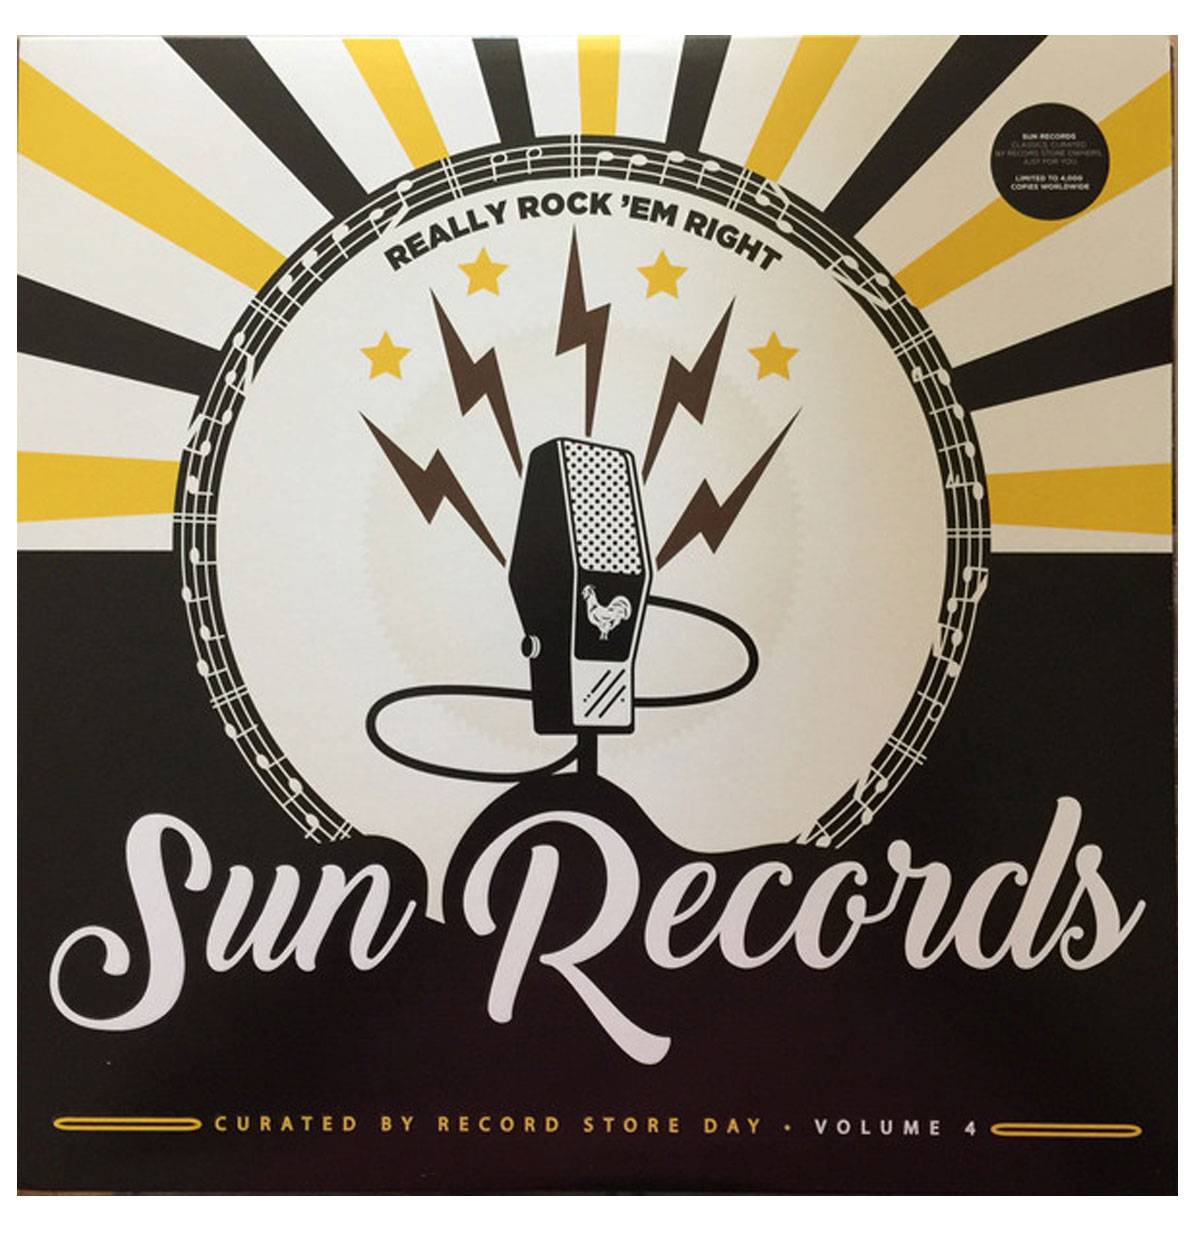 Sun Records - Really Rock 'Em Right Volume 4 LP